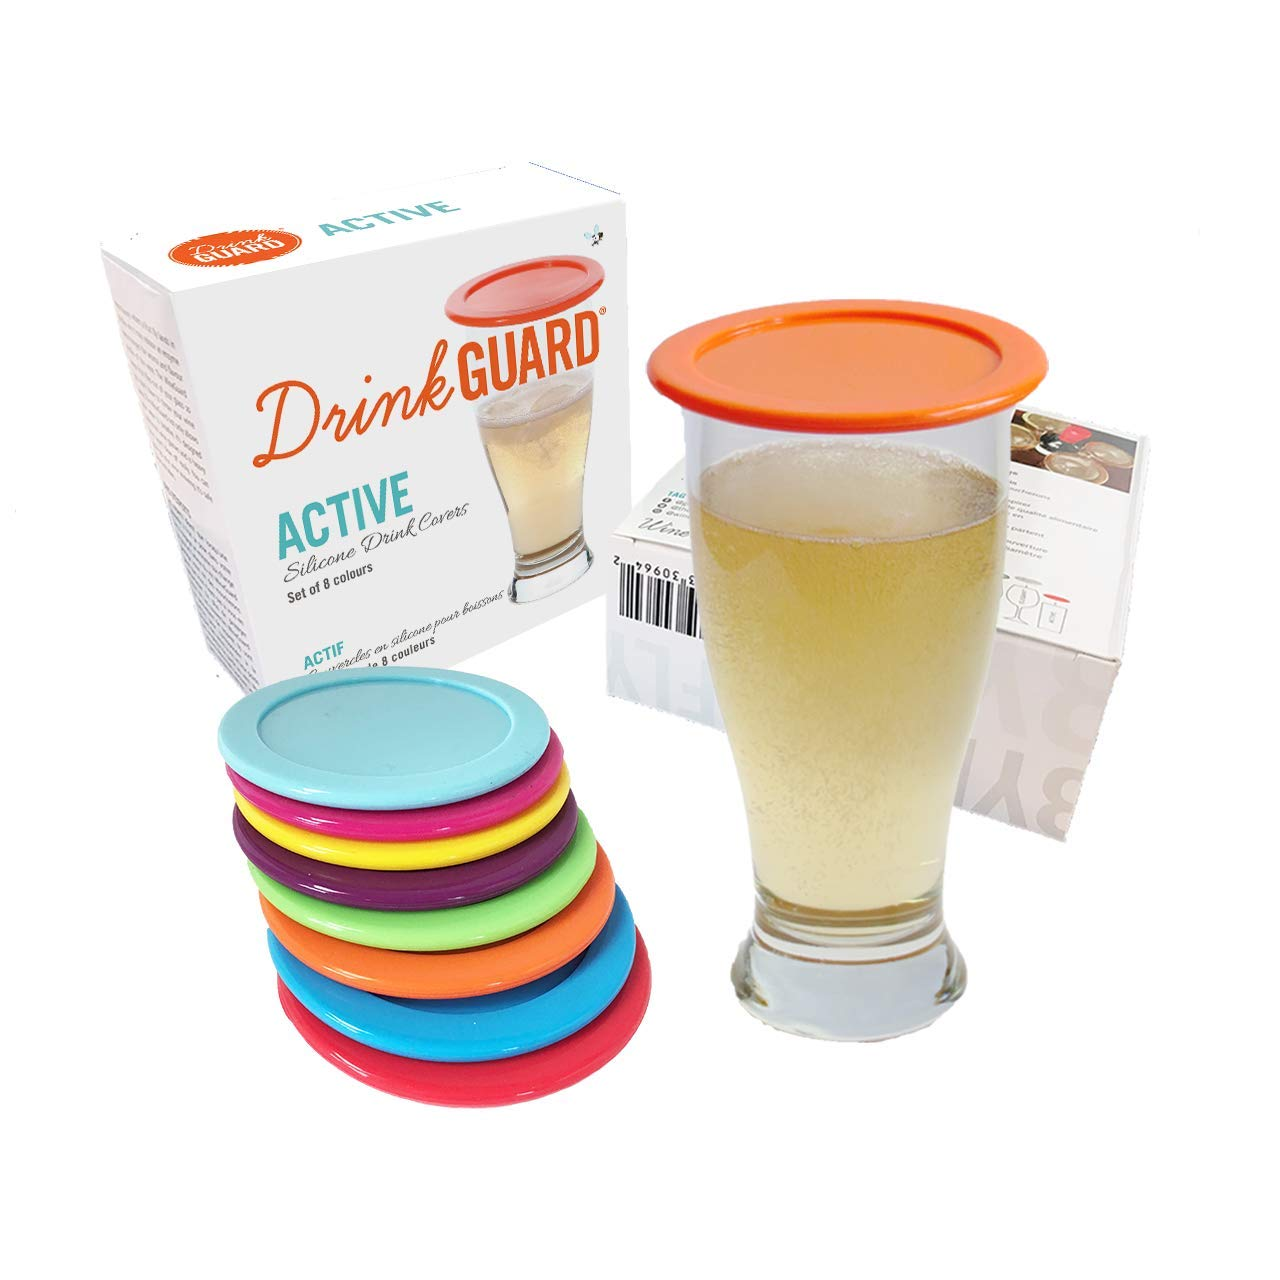 DrinkGuard - Silicone Drink Covers. Keep Your Drink Can, Beer Glass, Tea Cup & Coffee Mug Protected From Bugs & The Outdoors. Use as a Coaster. Microwave & Dishwasher Safe. Set of 8.